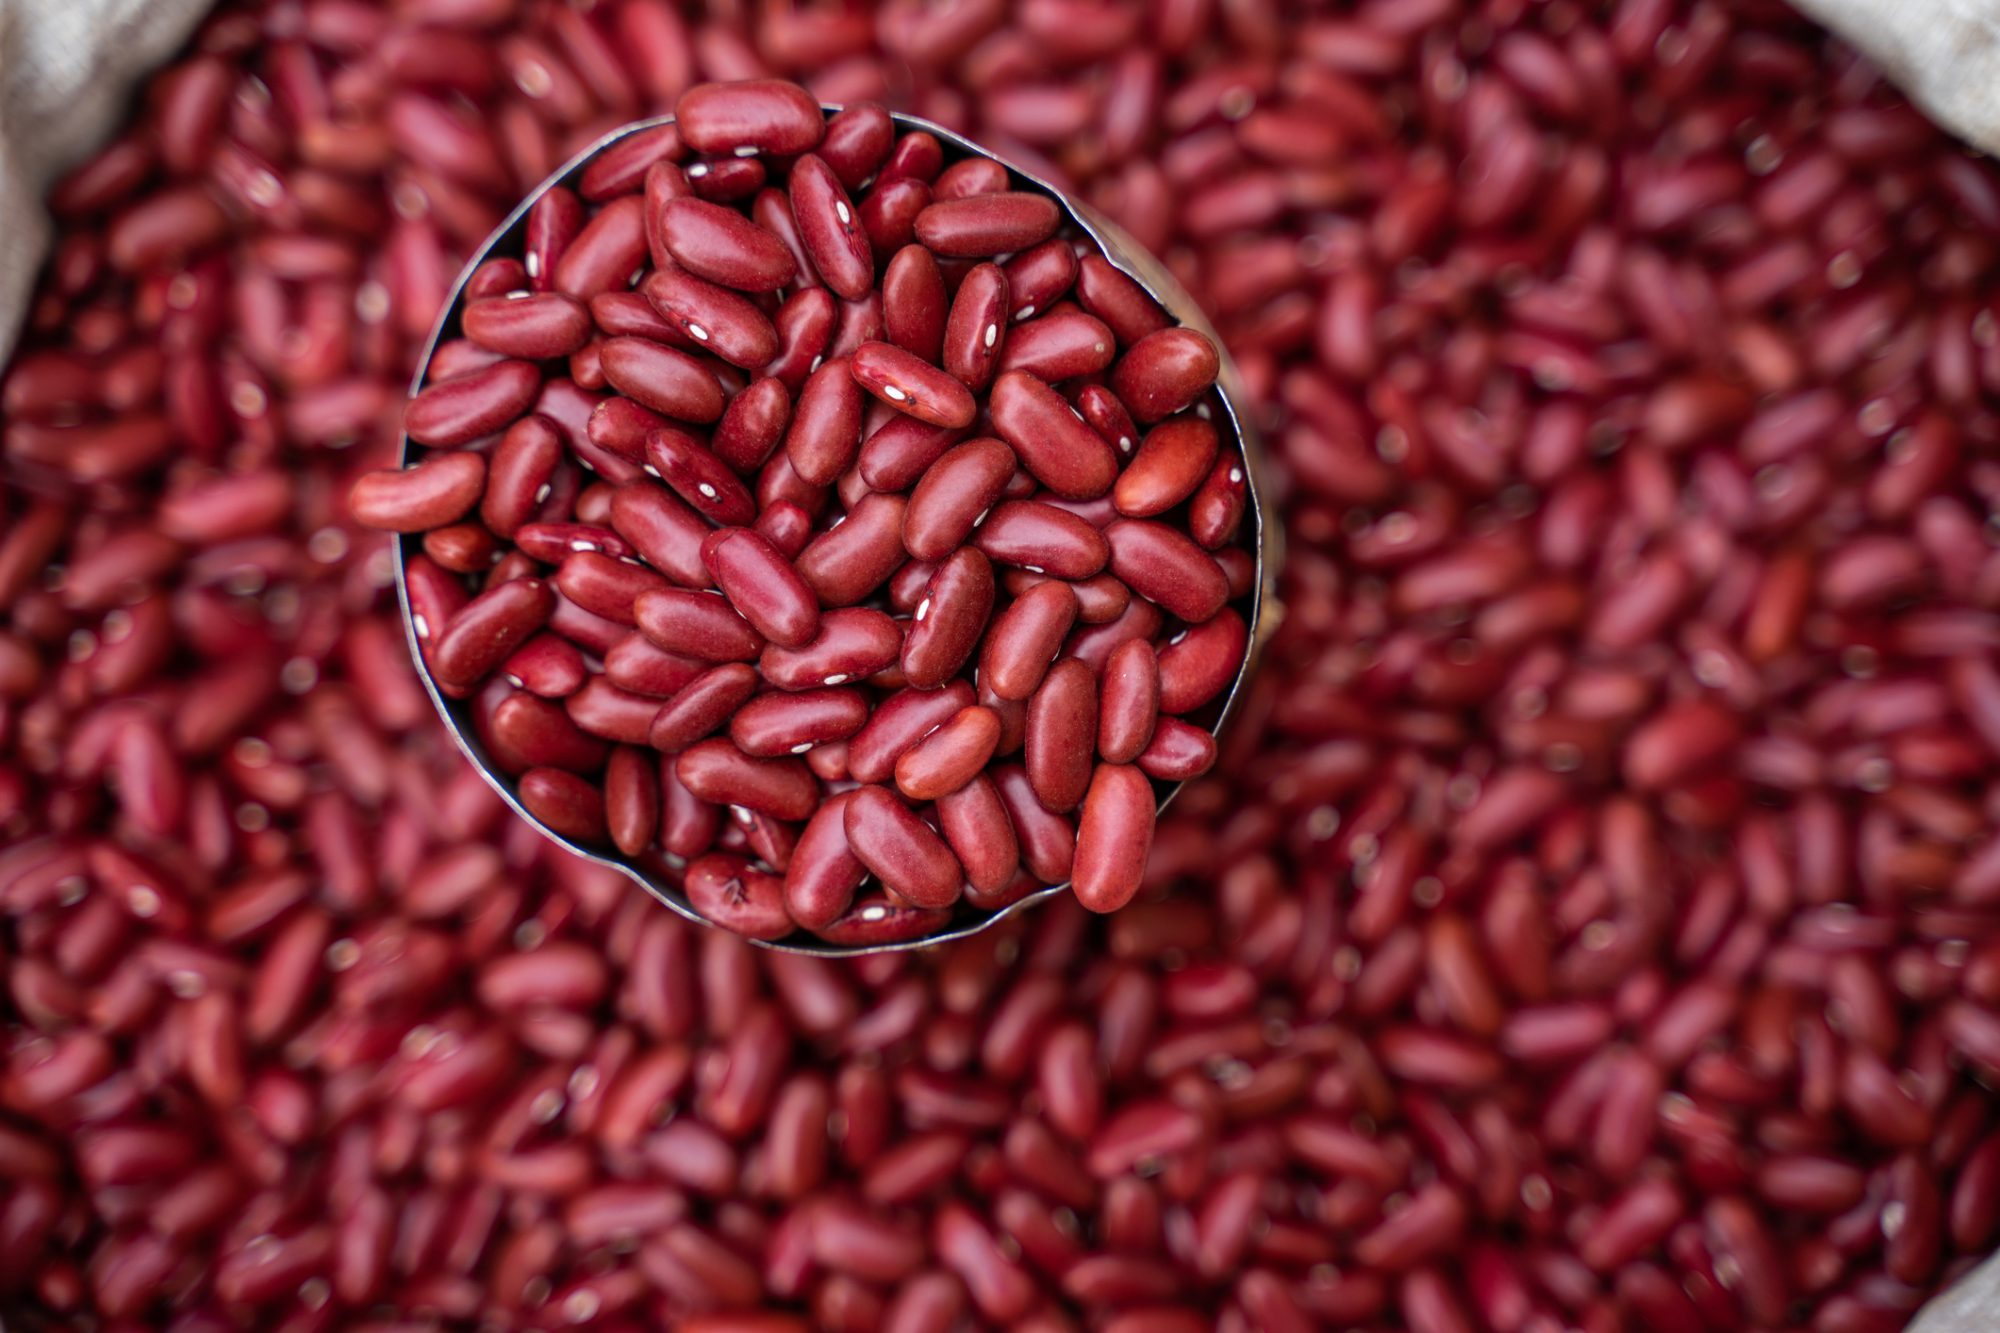 Beans are high in fiber and low in unsaturated fats, which is a winning nutritional combination for lowering cholesterol. Kidney beans may also help slow the spike in blood sugar. Enjoy them as a healthy side dish or in salads, soups, and chilis.